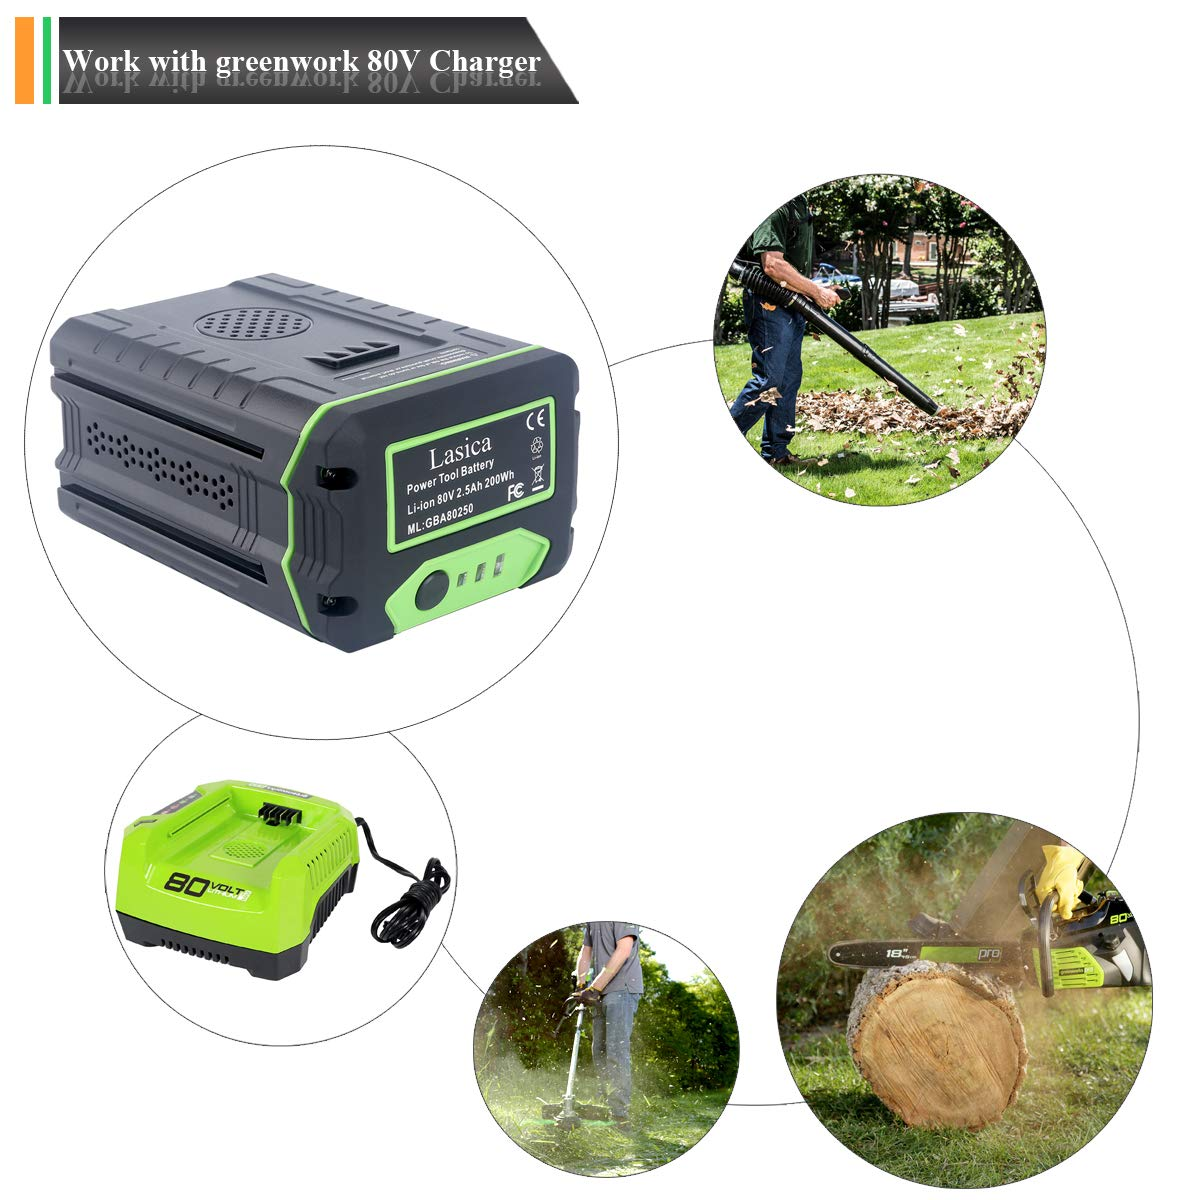 Lasica Replacement GBA80250 Greenworks 80V Lithium Battery for Greenworks  80-Volt Collection Cordless Power Tools Li-ion Battery GBA80400 GBA80200